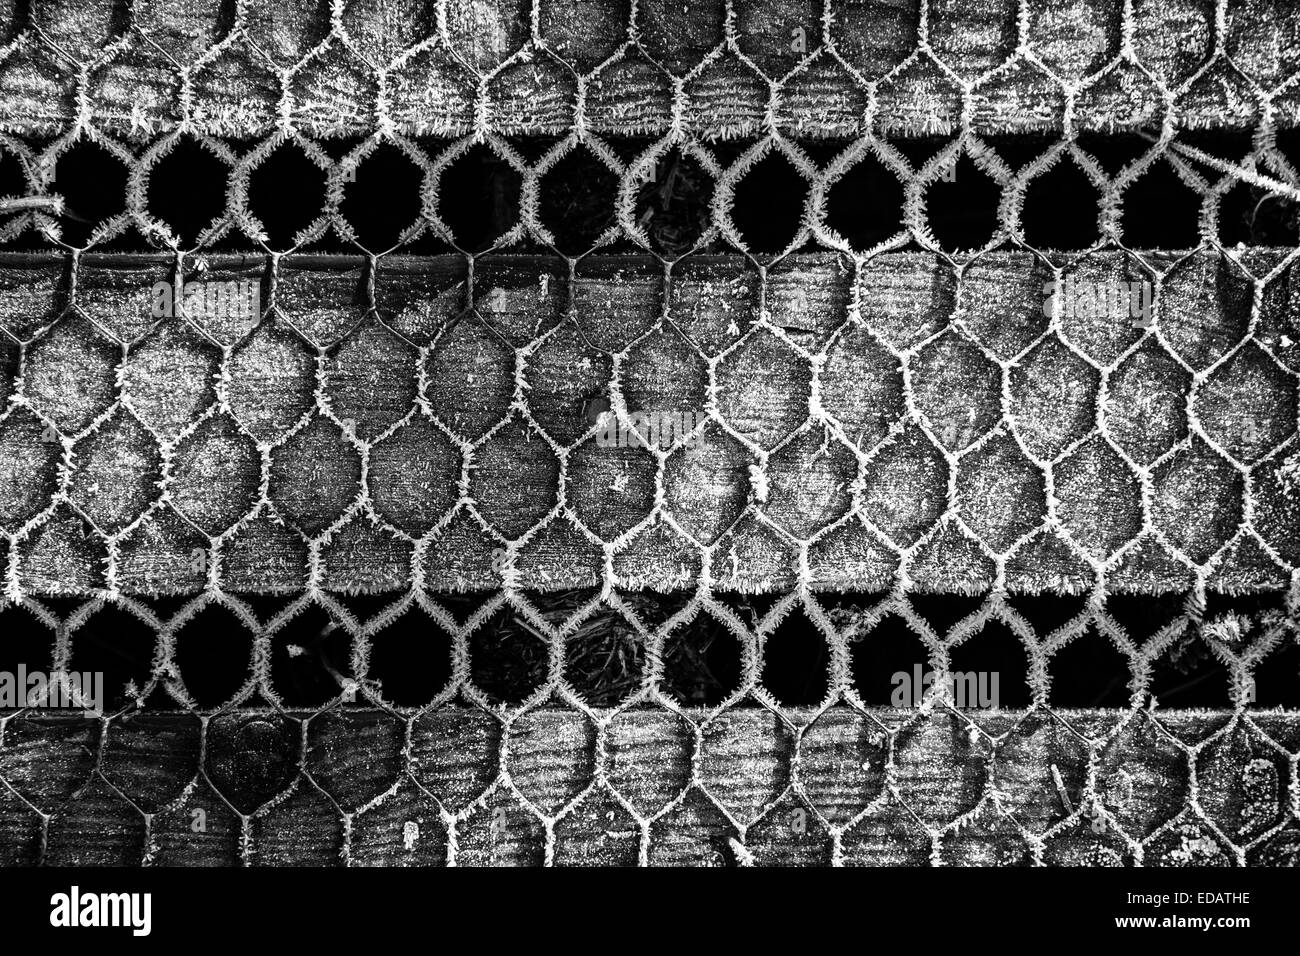 Chicken Wire Stock Photos & Chicken Wire Stock Images - Alamy